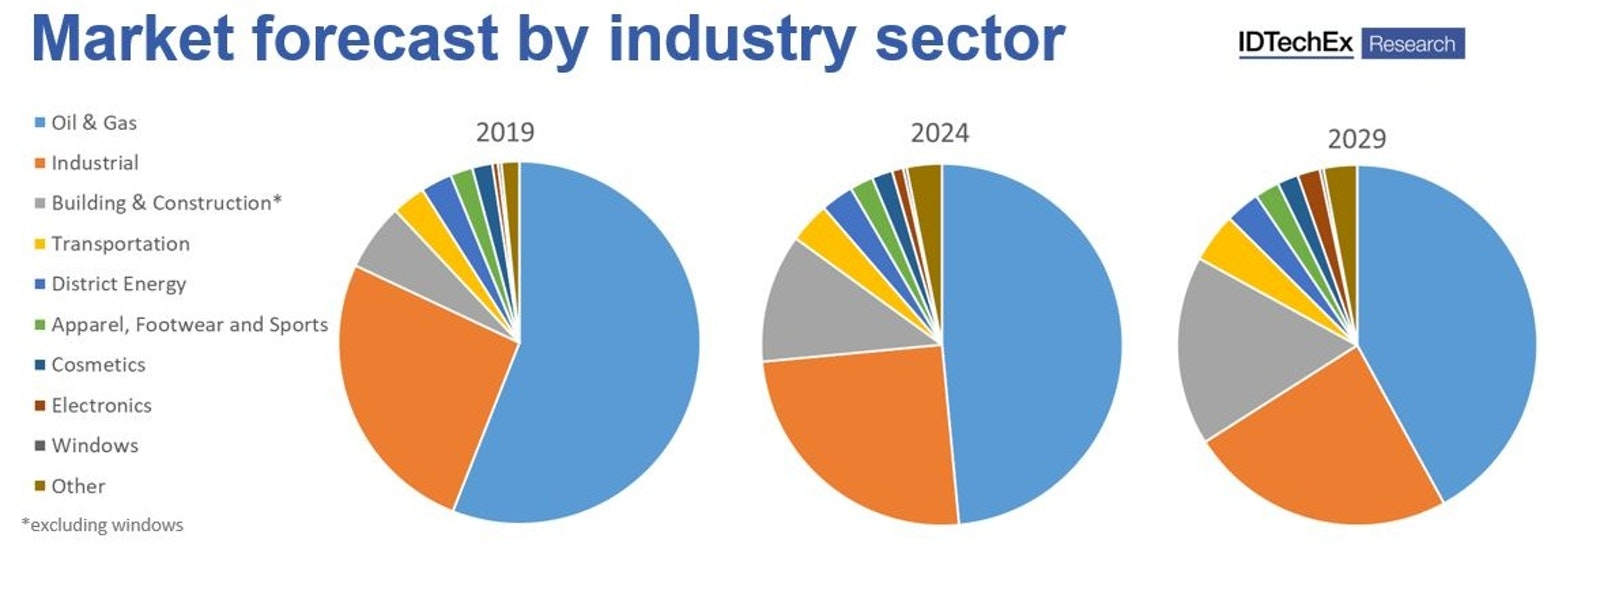 Why isn't the aerogel industry booming? | IDTechEx Research